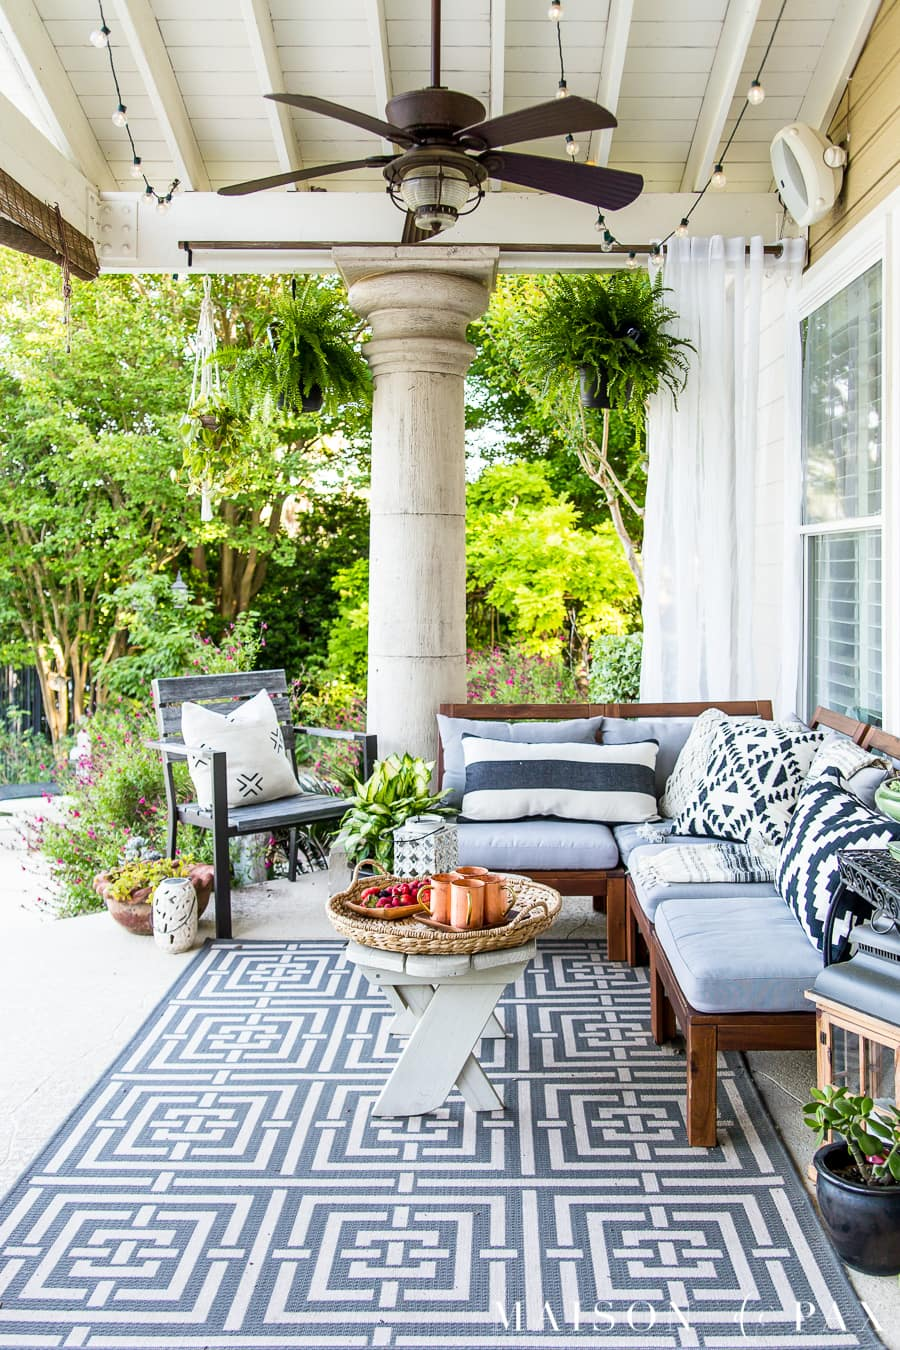 Summer Patio with vaulted ceiling and string lights: get outdoor living decorating ideas #outdoorliving #patio #patiodecor #blackandwhite #succulents #backporch #outdoorentertaining